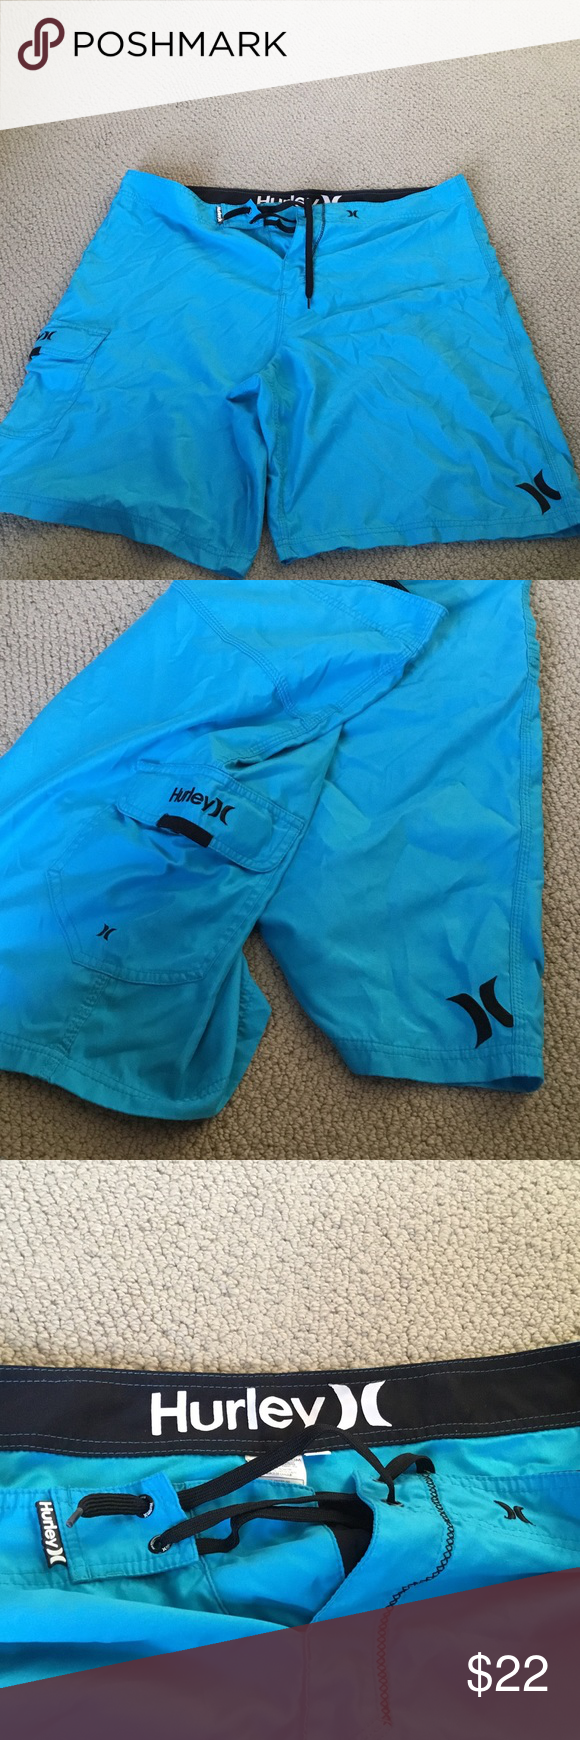 Like new blue Hurley board shorts These were worn once and are in perfect condition size 40 Hurley Swim Board Shorts